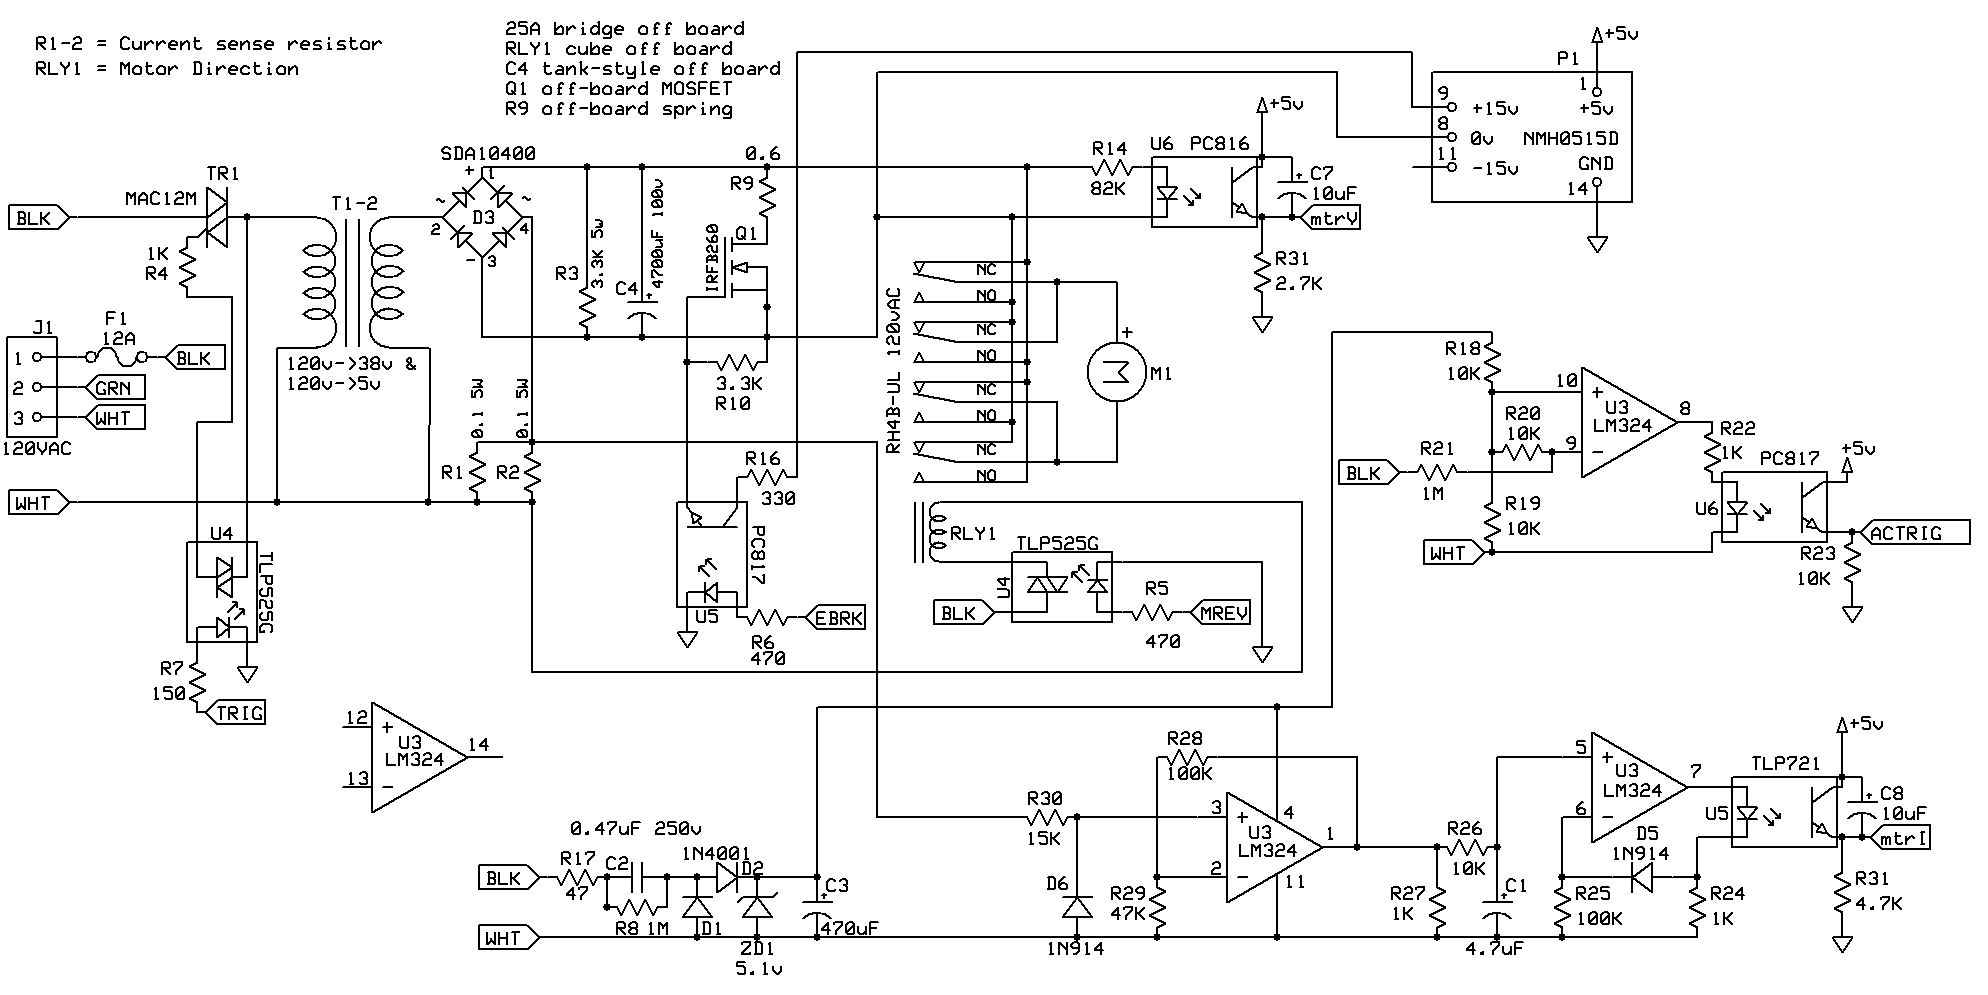 Tech Forum Nuts Volts Magazine Pwm Pulse Generator Electronics Circuits Projects And On The Schematic In Figure 1 5v Ground Points Belong To An Isolated 1a Cell Phone Charger Not Shown Is Pic16f747 Associated Circuitry